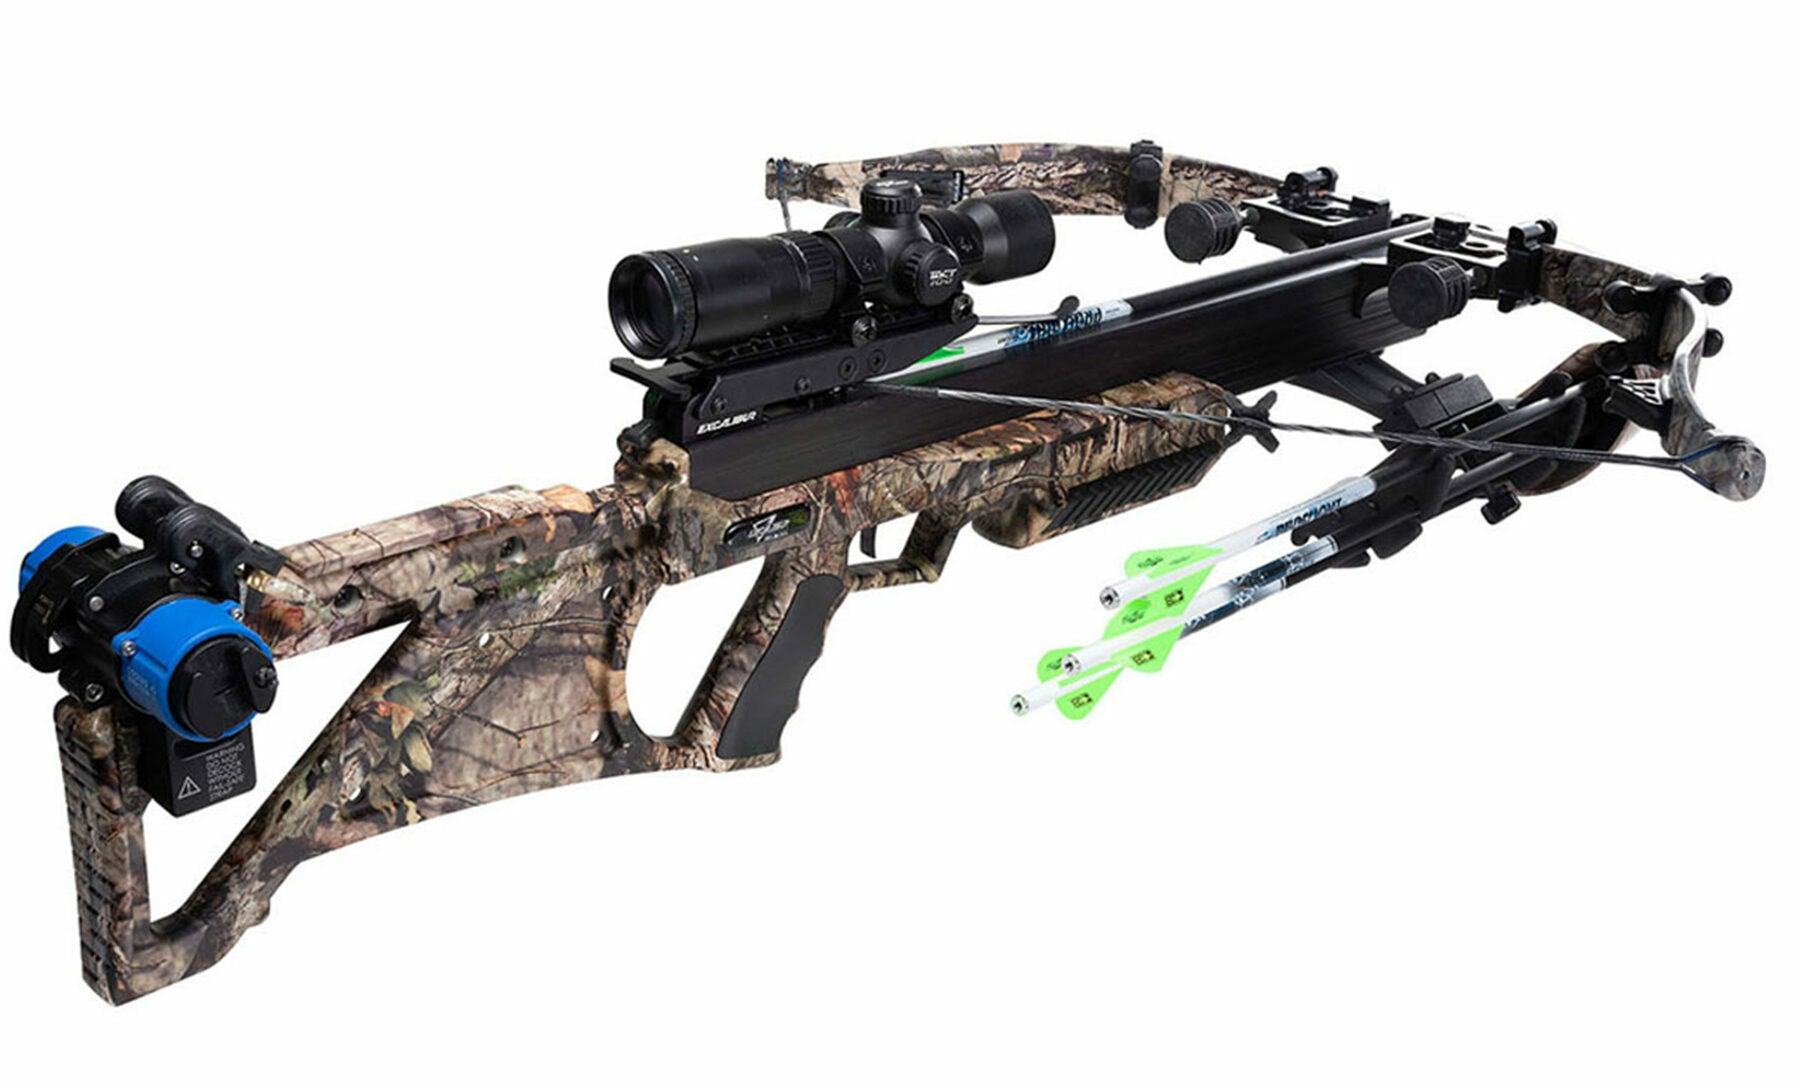 The Excalibur Bulldog 440 is one of the fastest crossbow models for a recurve crossbow.